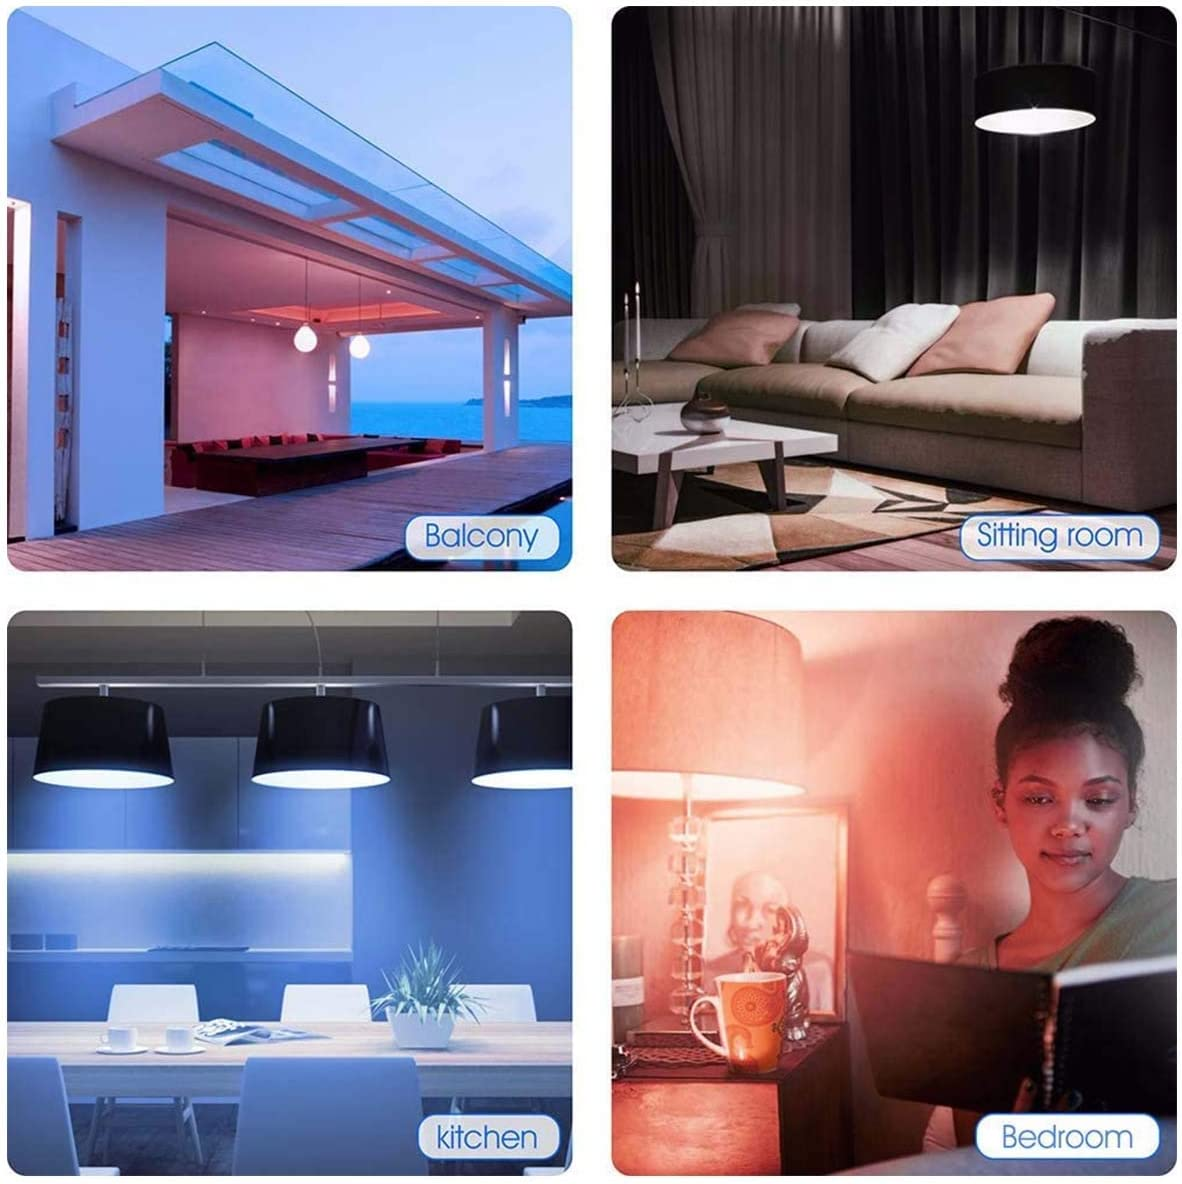 LED Smart Light Bulb,Remote Control Warm /& Cold White RGB Dimmable Bulbs Work with APP Alexa and Google Assistant E26 E27 7W 1 Pack